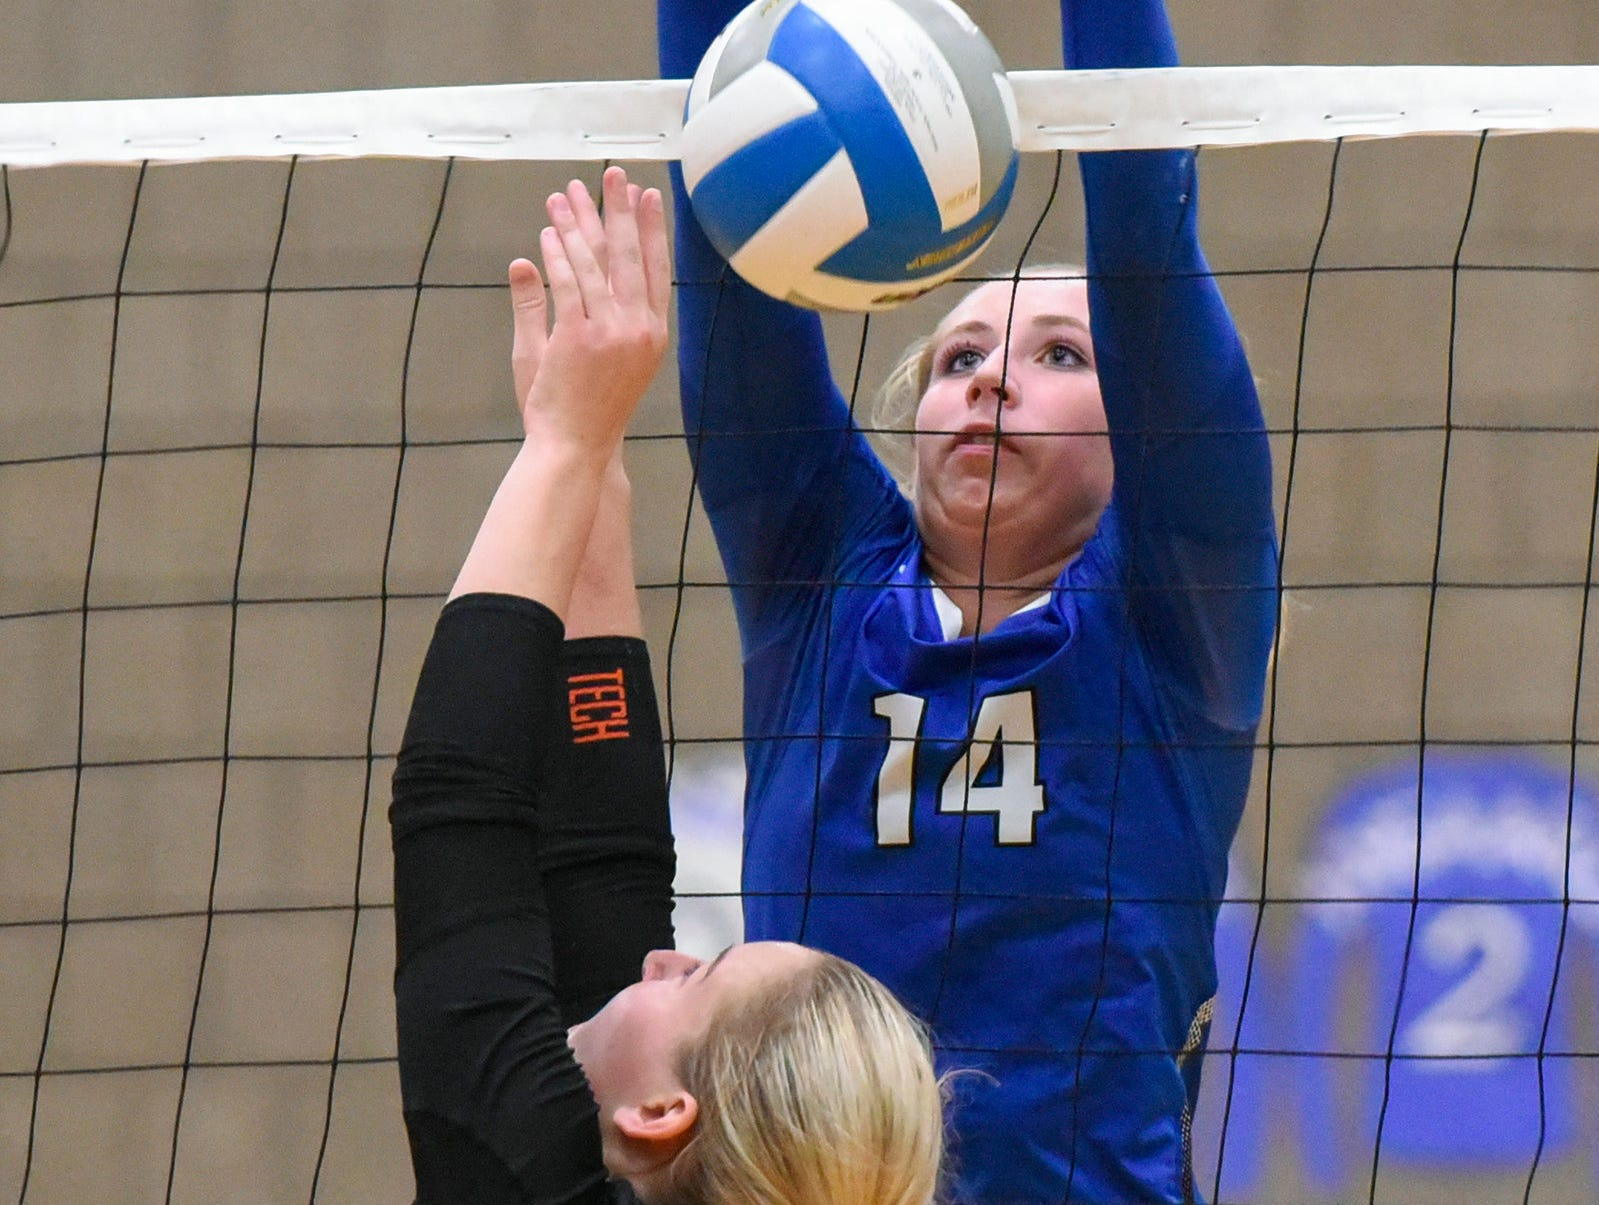 Sartell's Miah Gessell, 14, goes up to block a shot by Tech's Sydney Poepping during the first game Tuesday, Sept. 11, in Sartell